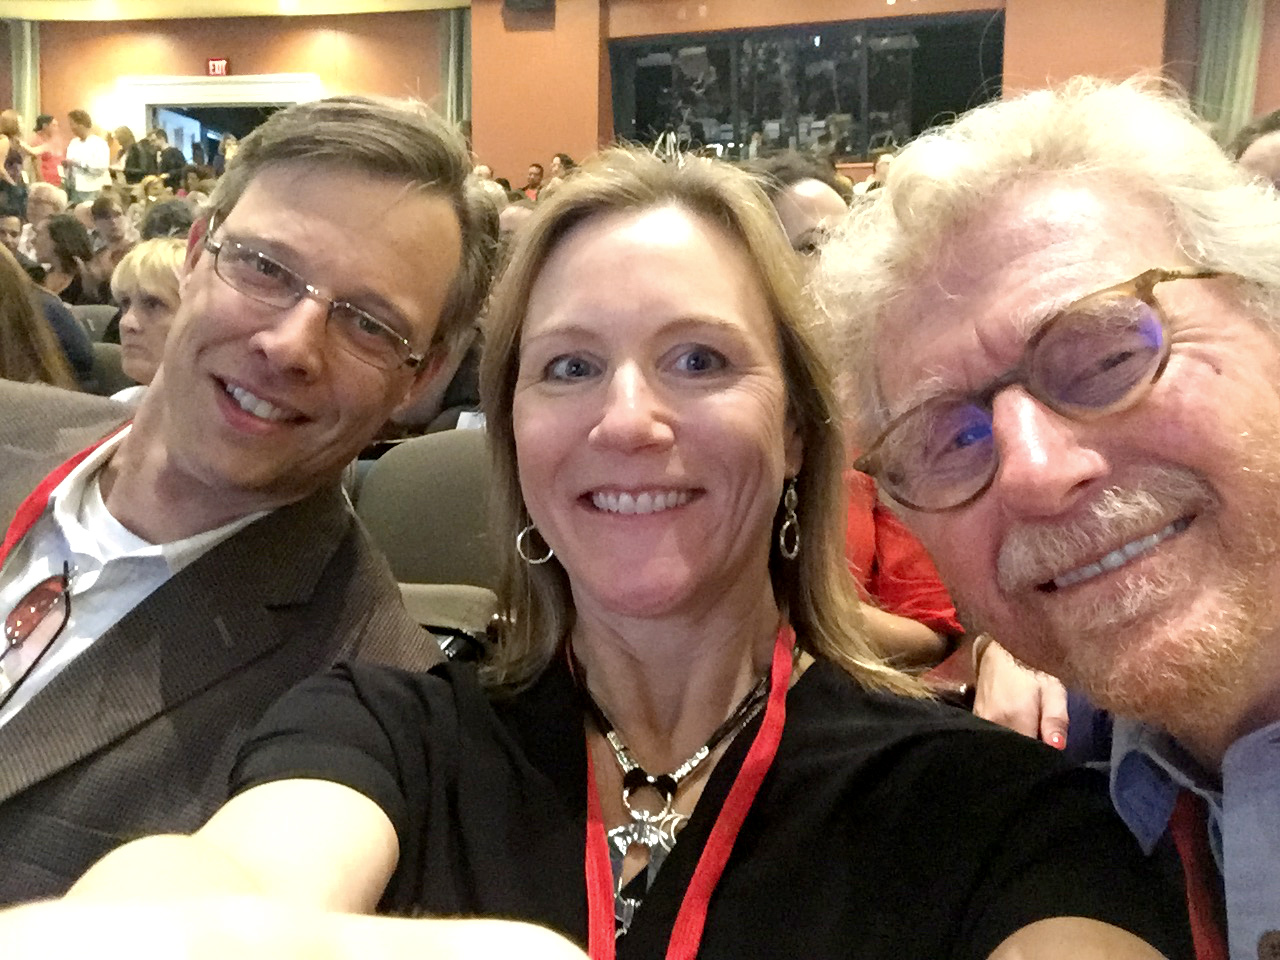 Here I am at TEDx Charlotte - joined by Phil Harris, host on WKQC-FM with his wife, Sara Vavra of Va! Wellness + Bodywork.